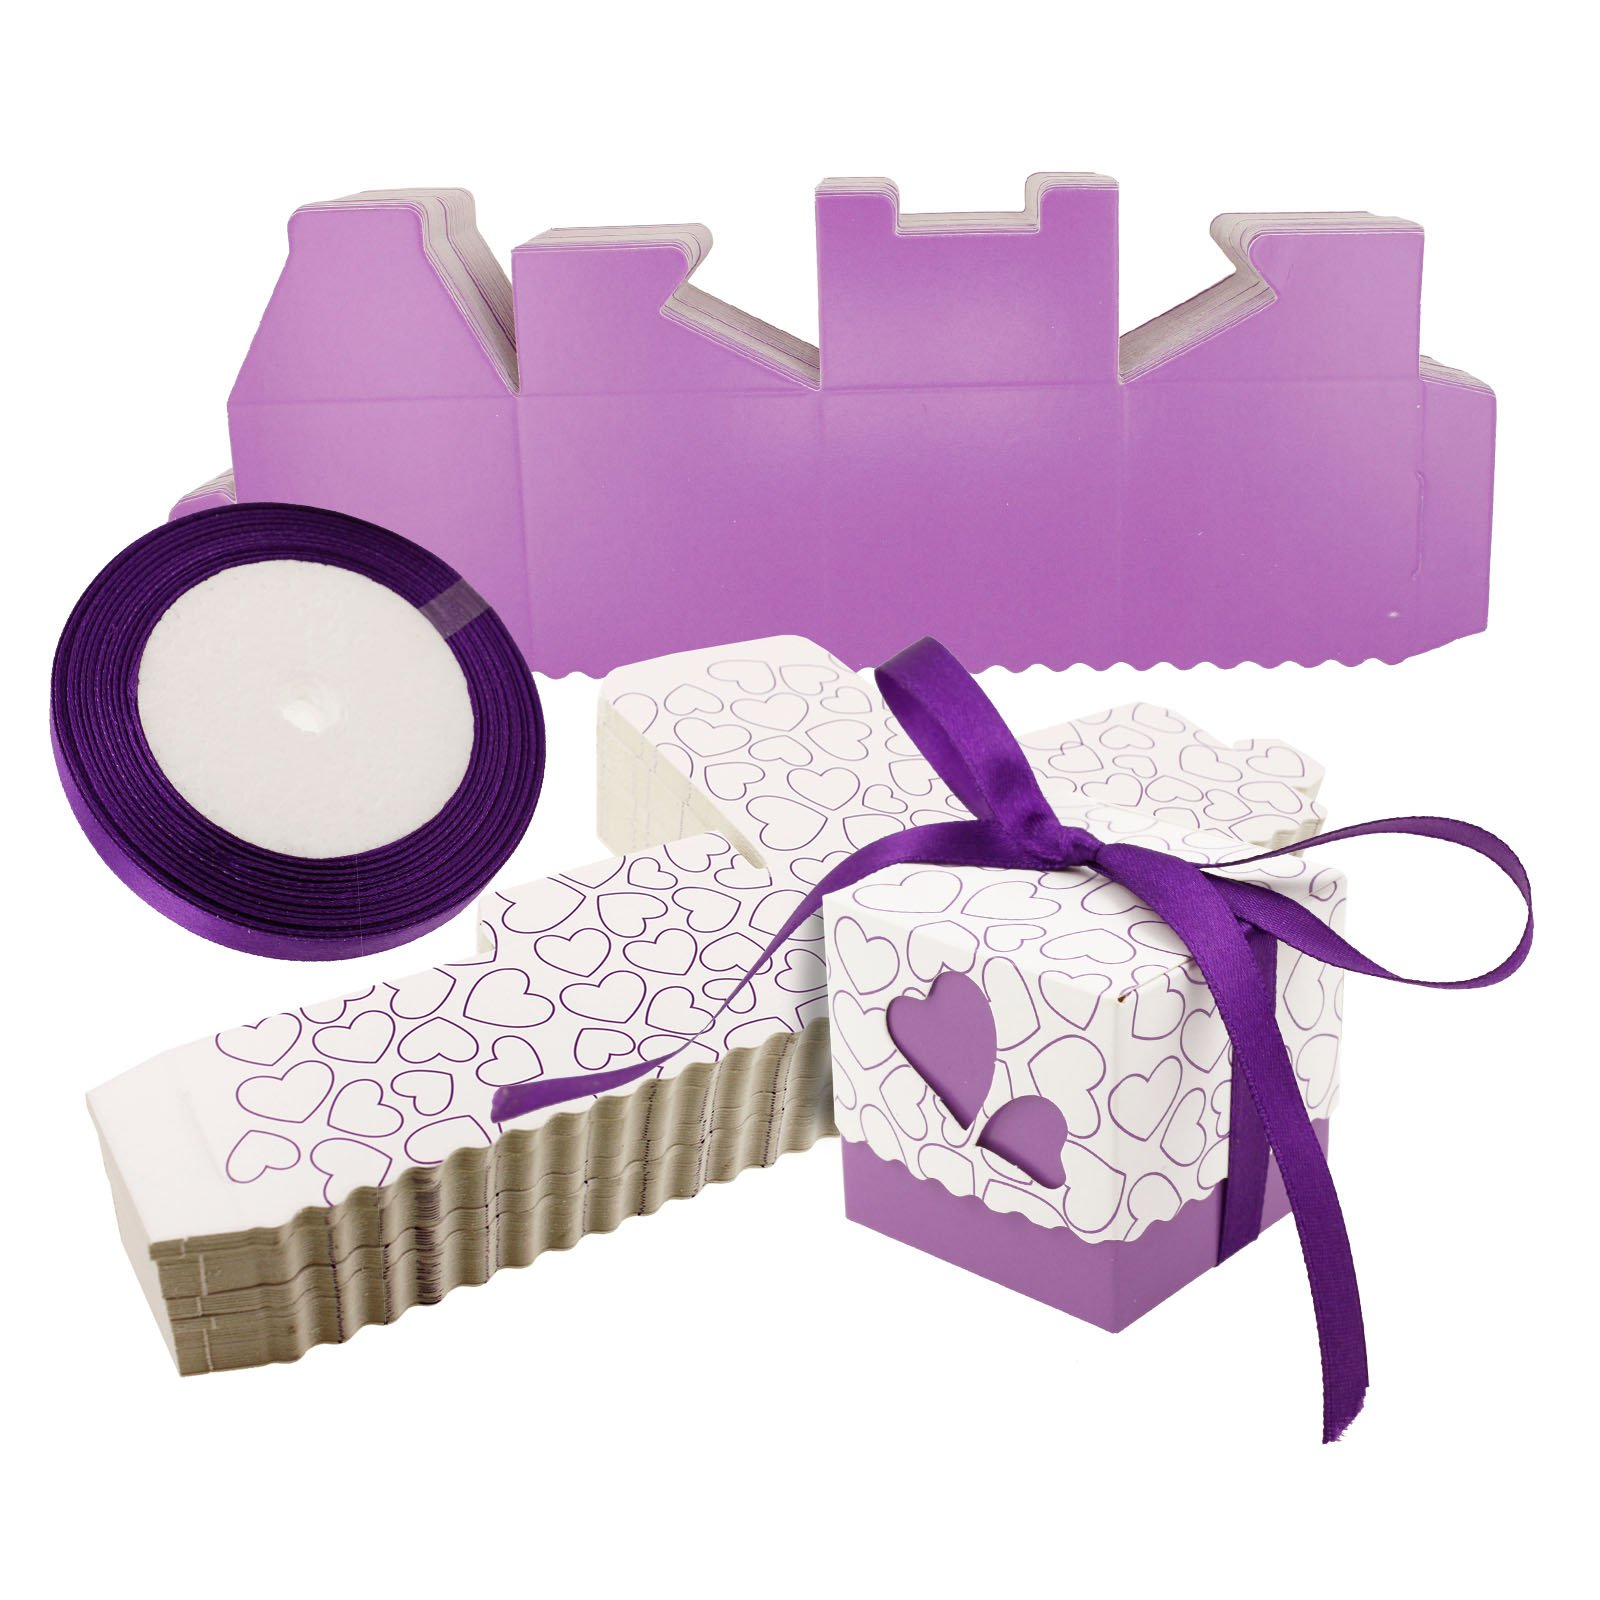 Creative Idear 50x Wedding Party Gift Case Ribbons Favors Love Heart Design Candy Boxes Purple